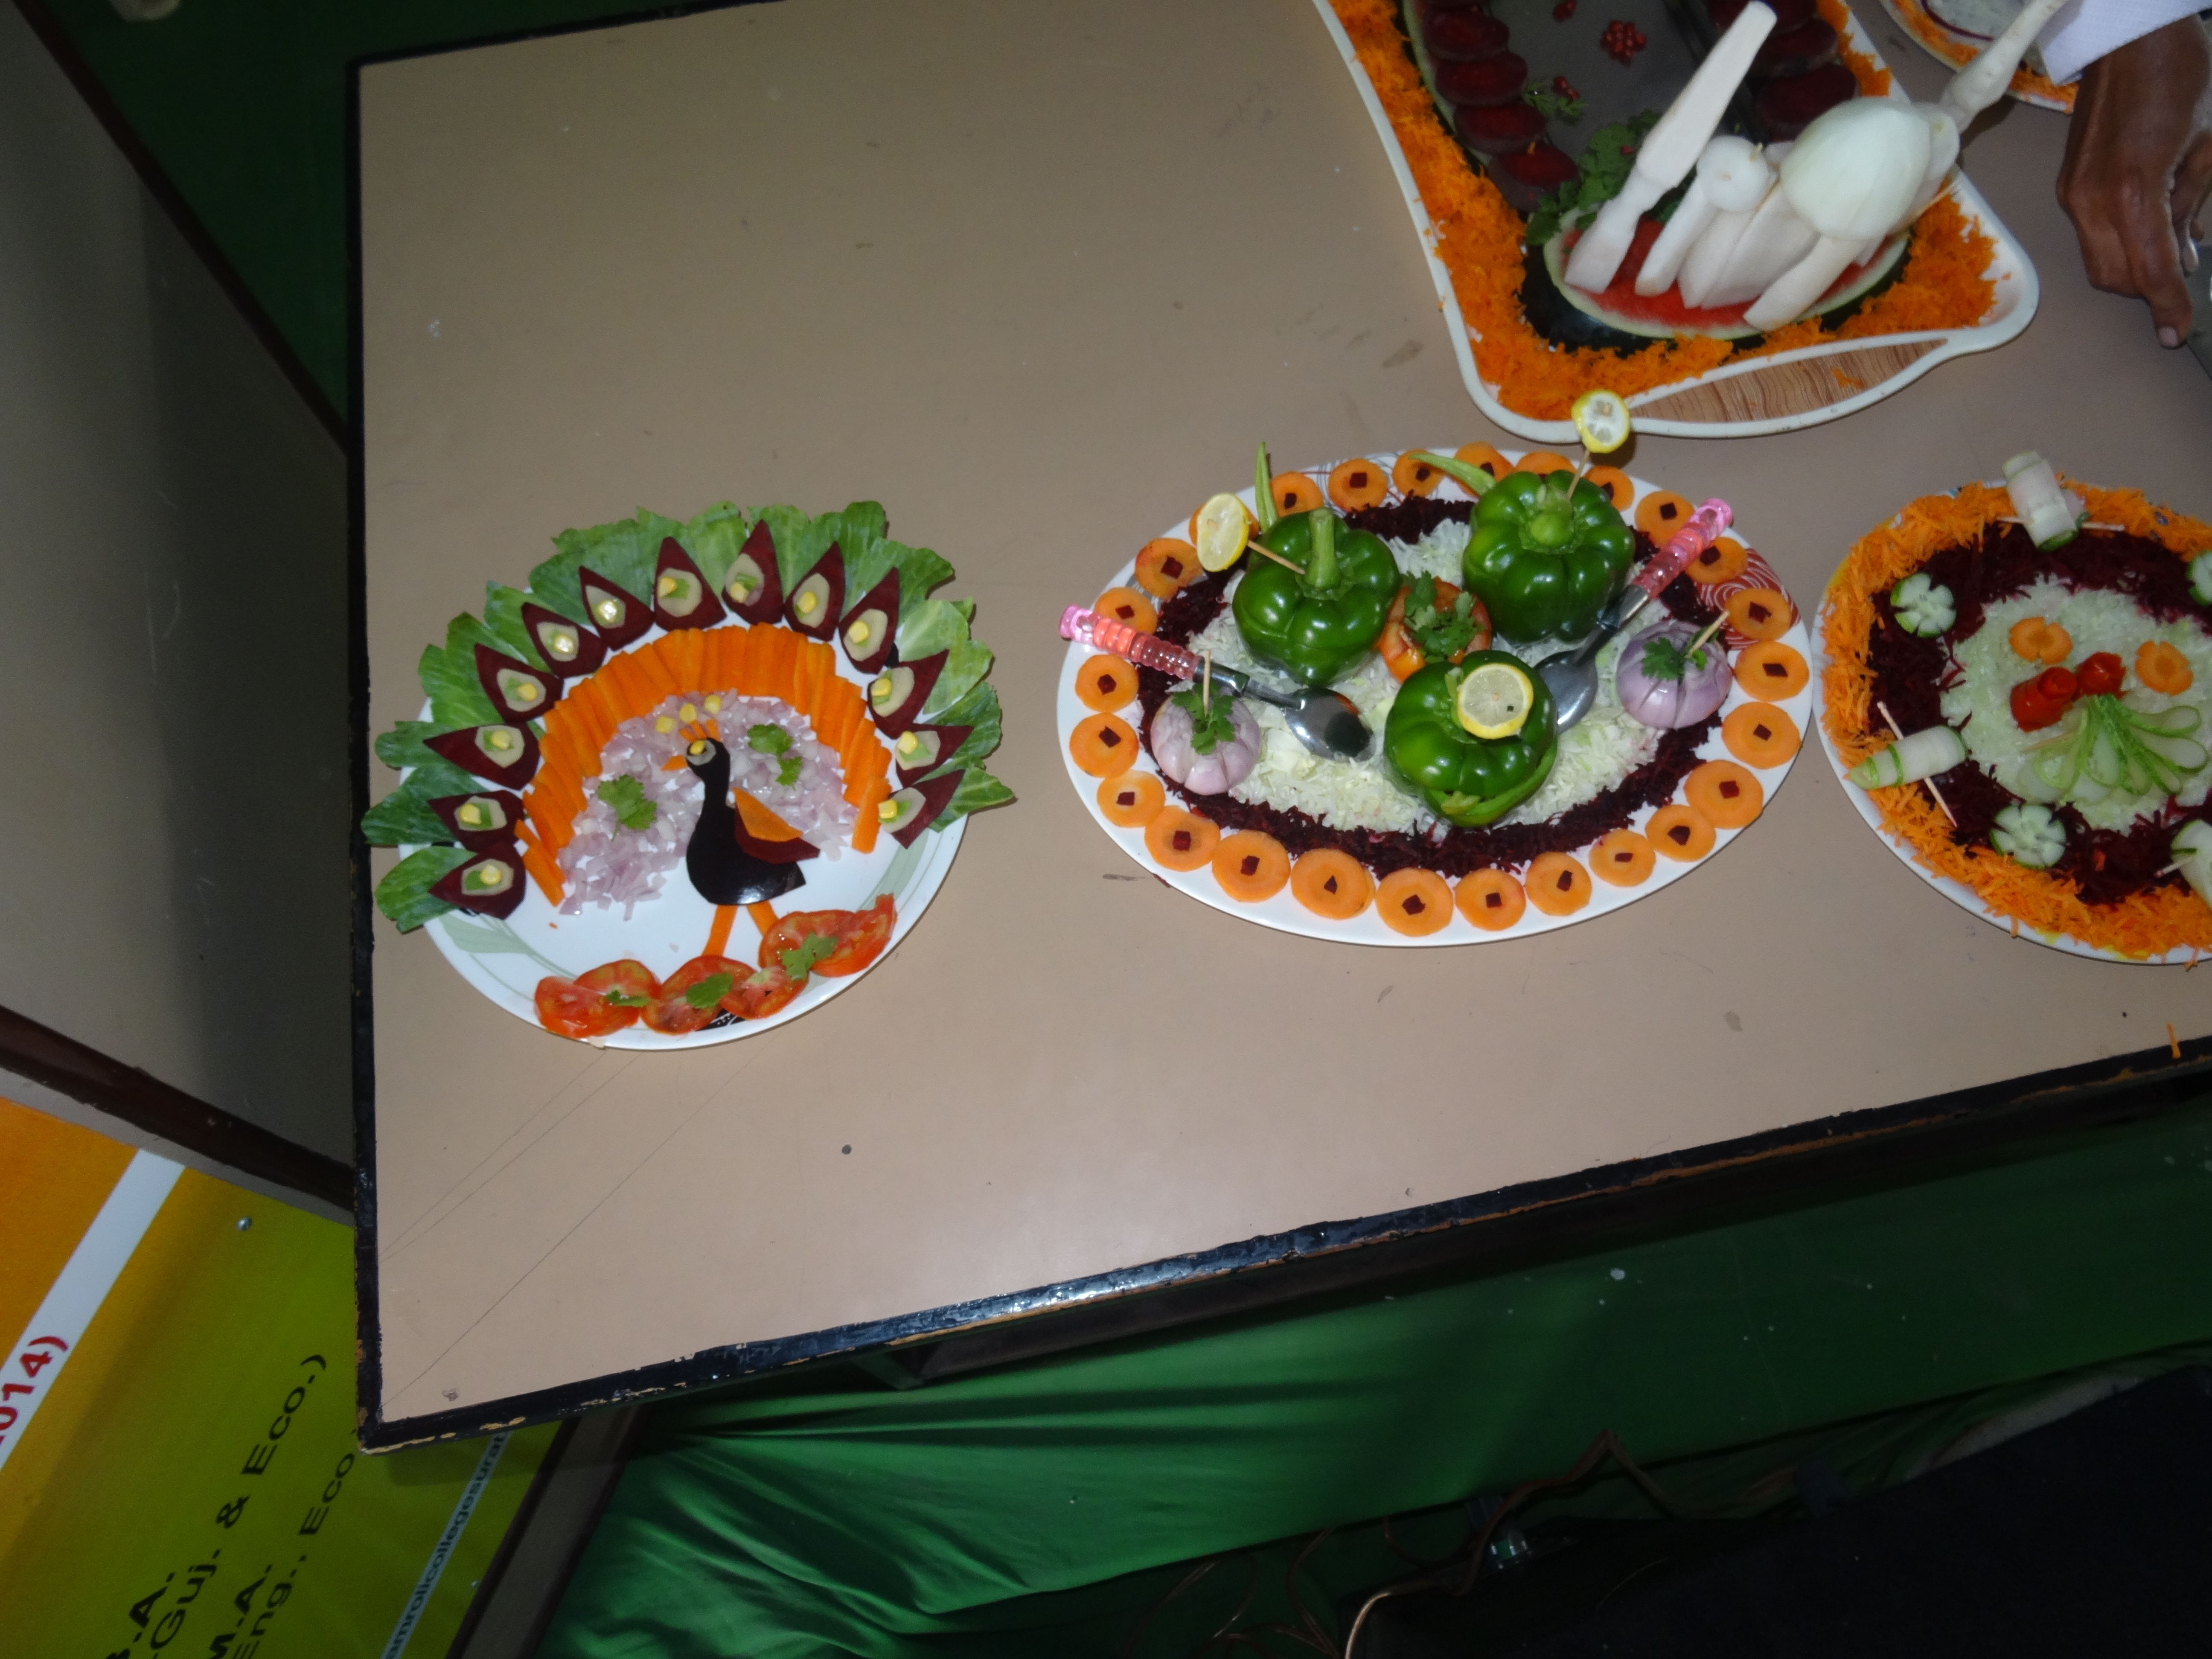 Inter College Salad Making Competition At Amroli College 21 07 2016